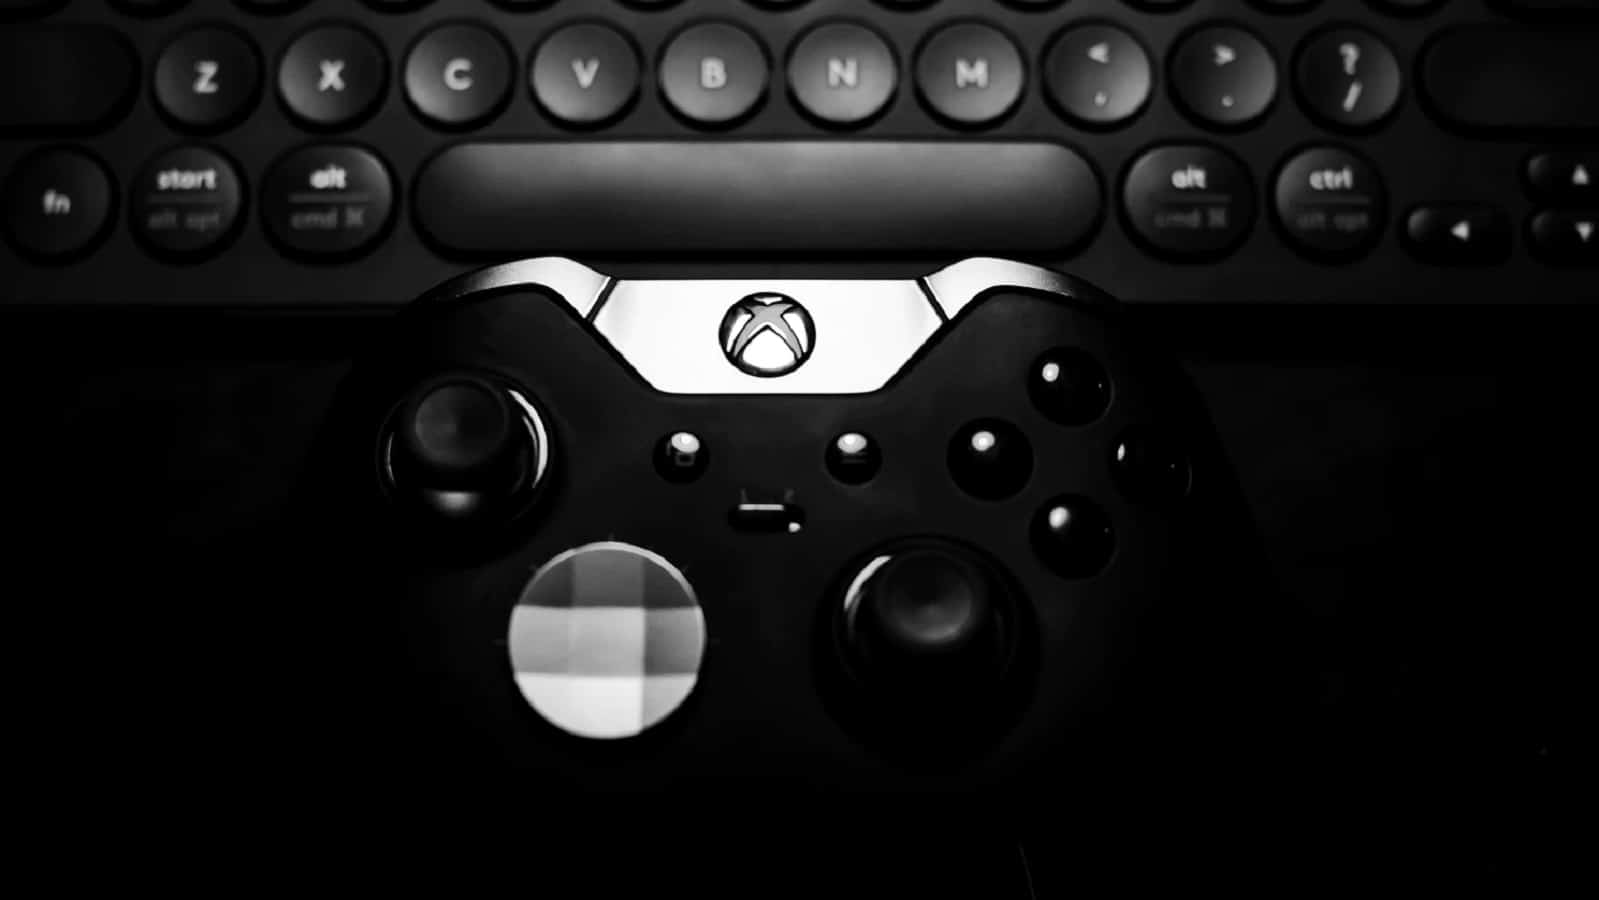 xbox one in black and white